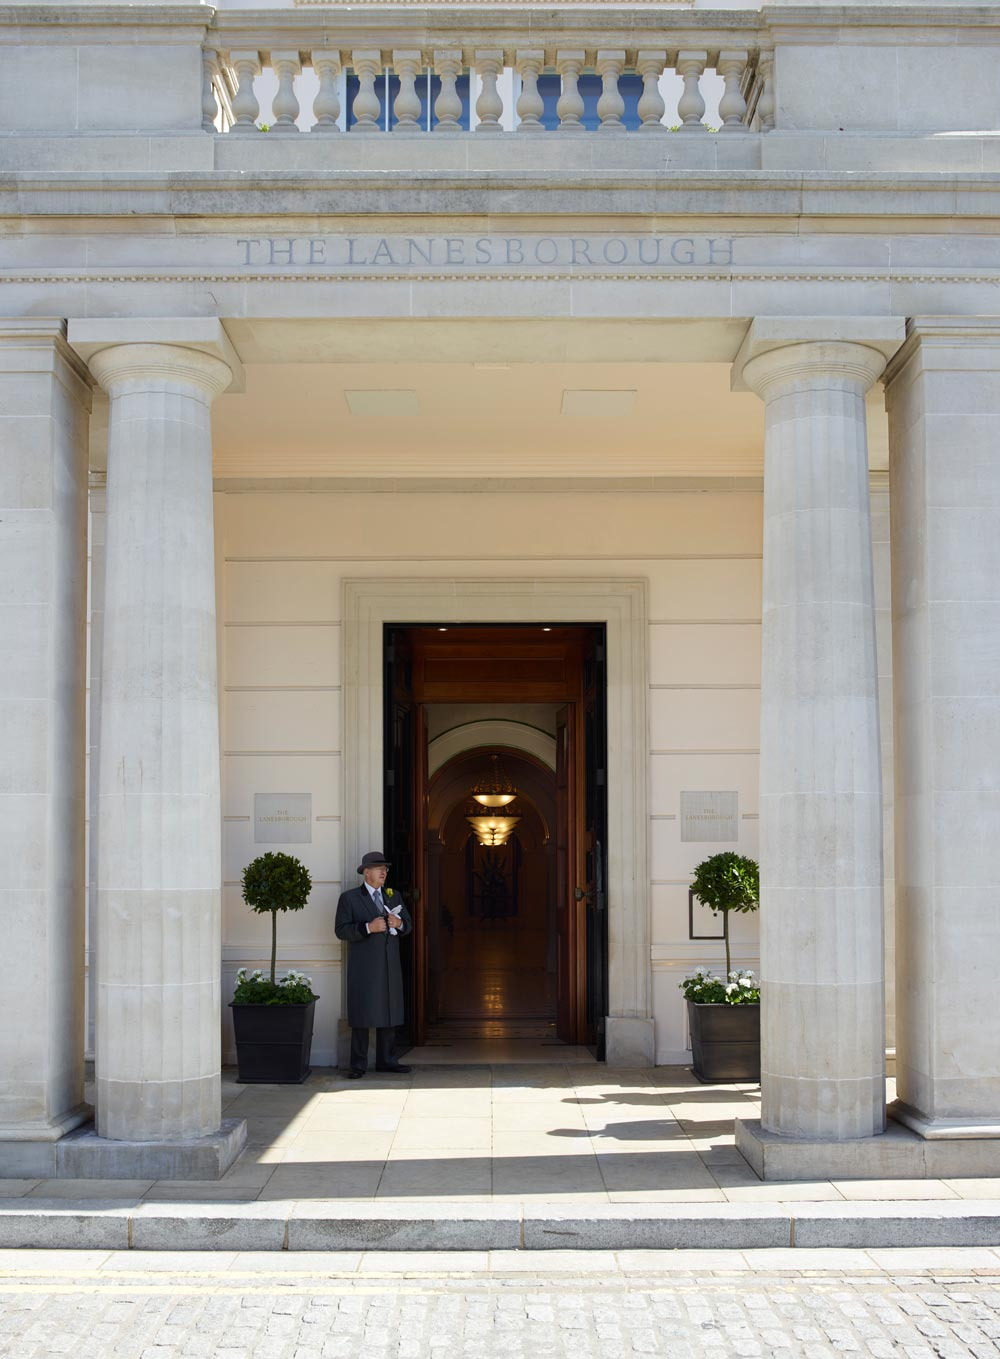 Entrance to The LanesboroughLondonUK